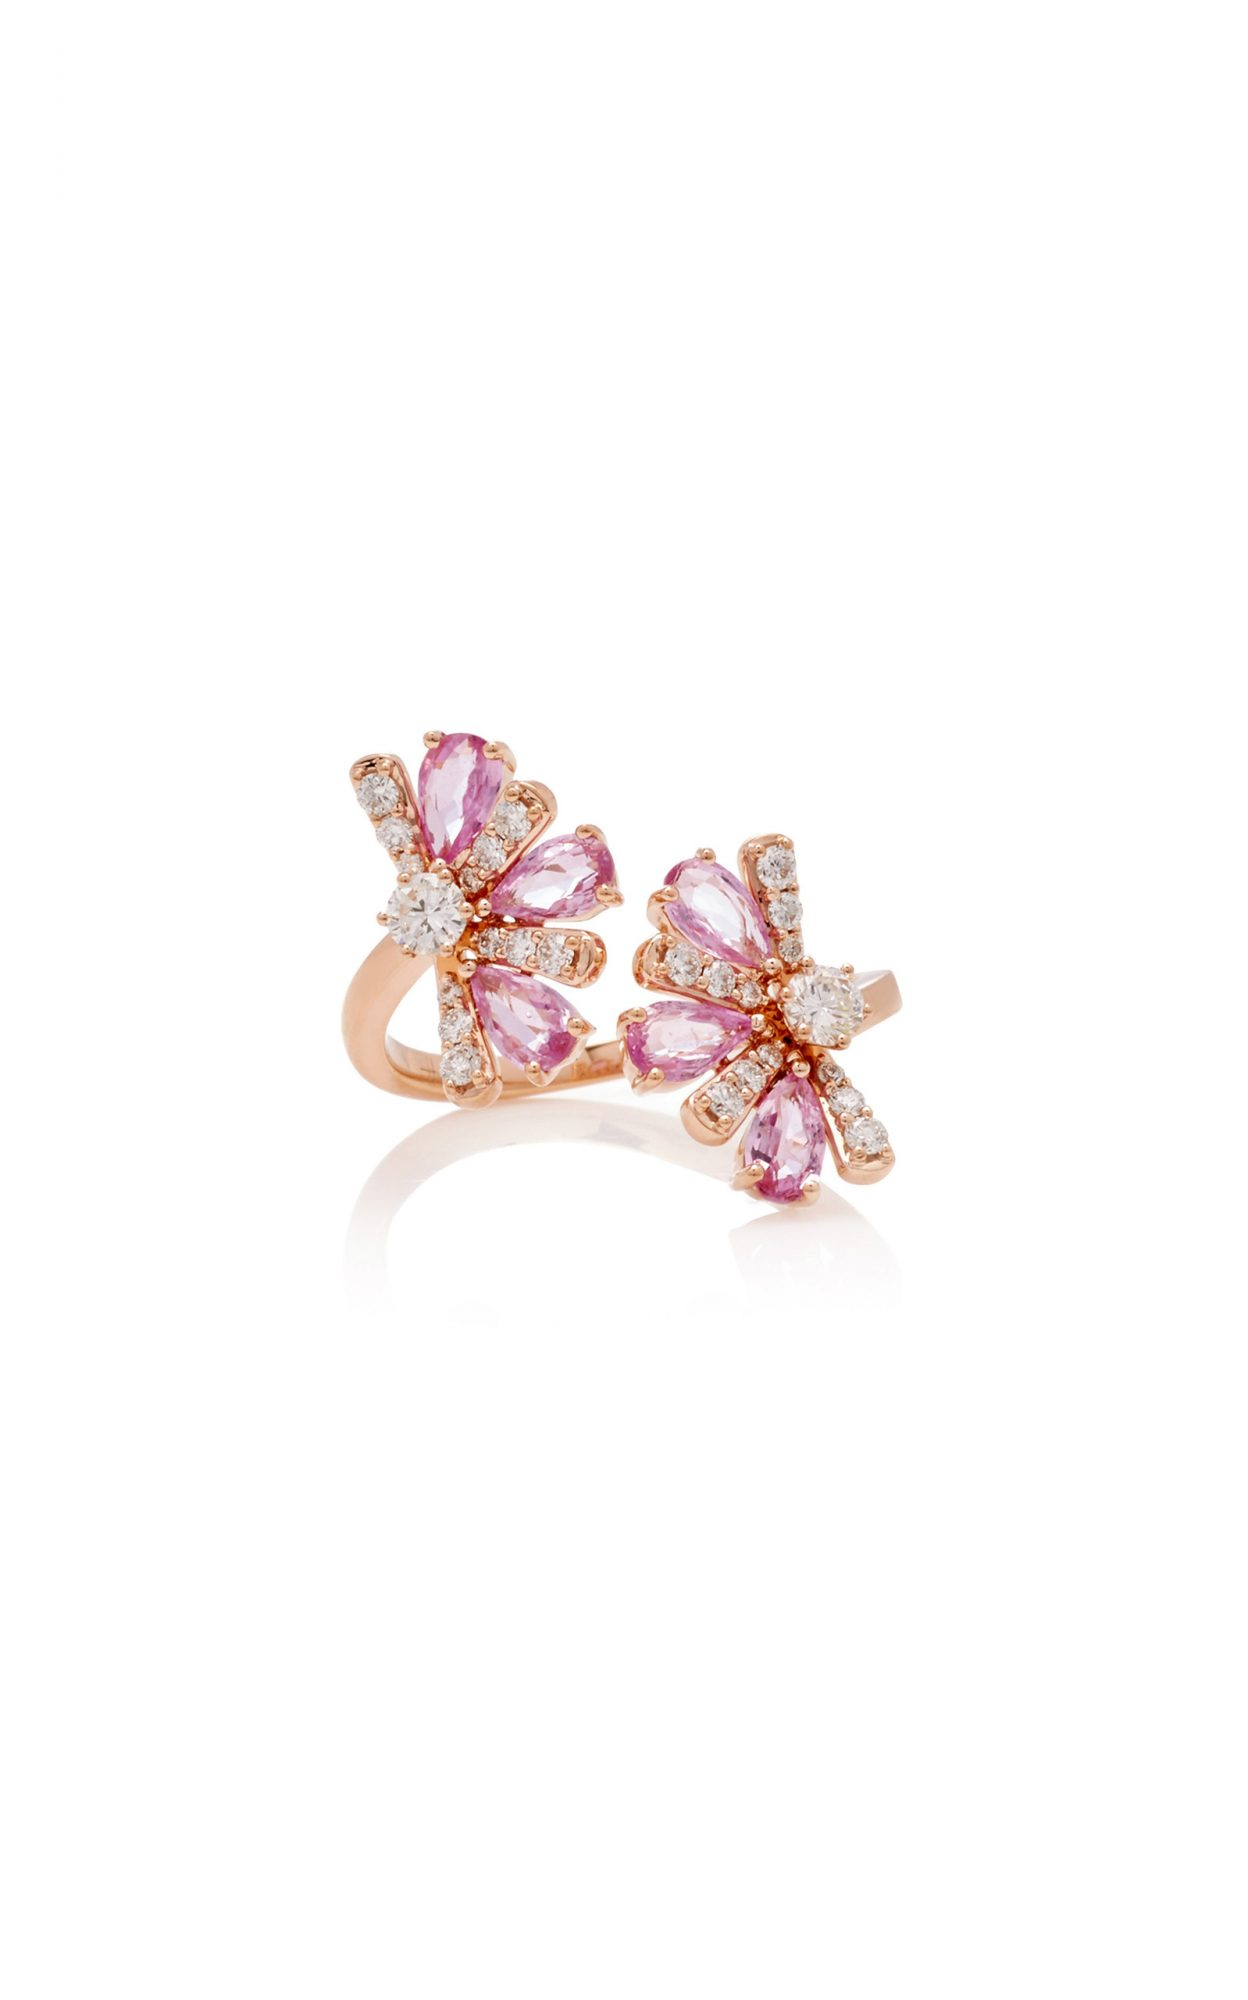 Rose Gold, Sapphire, and Diamond Ring